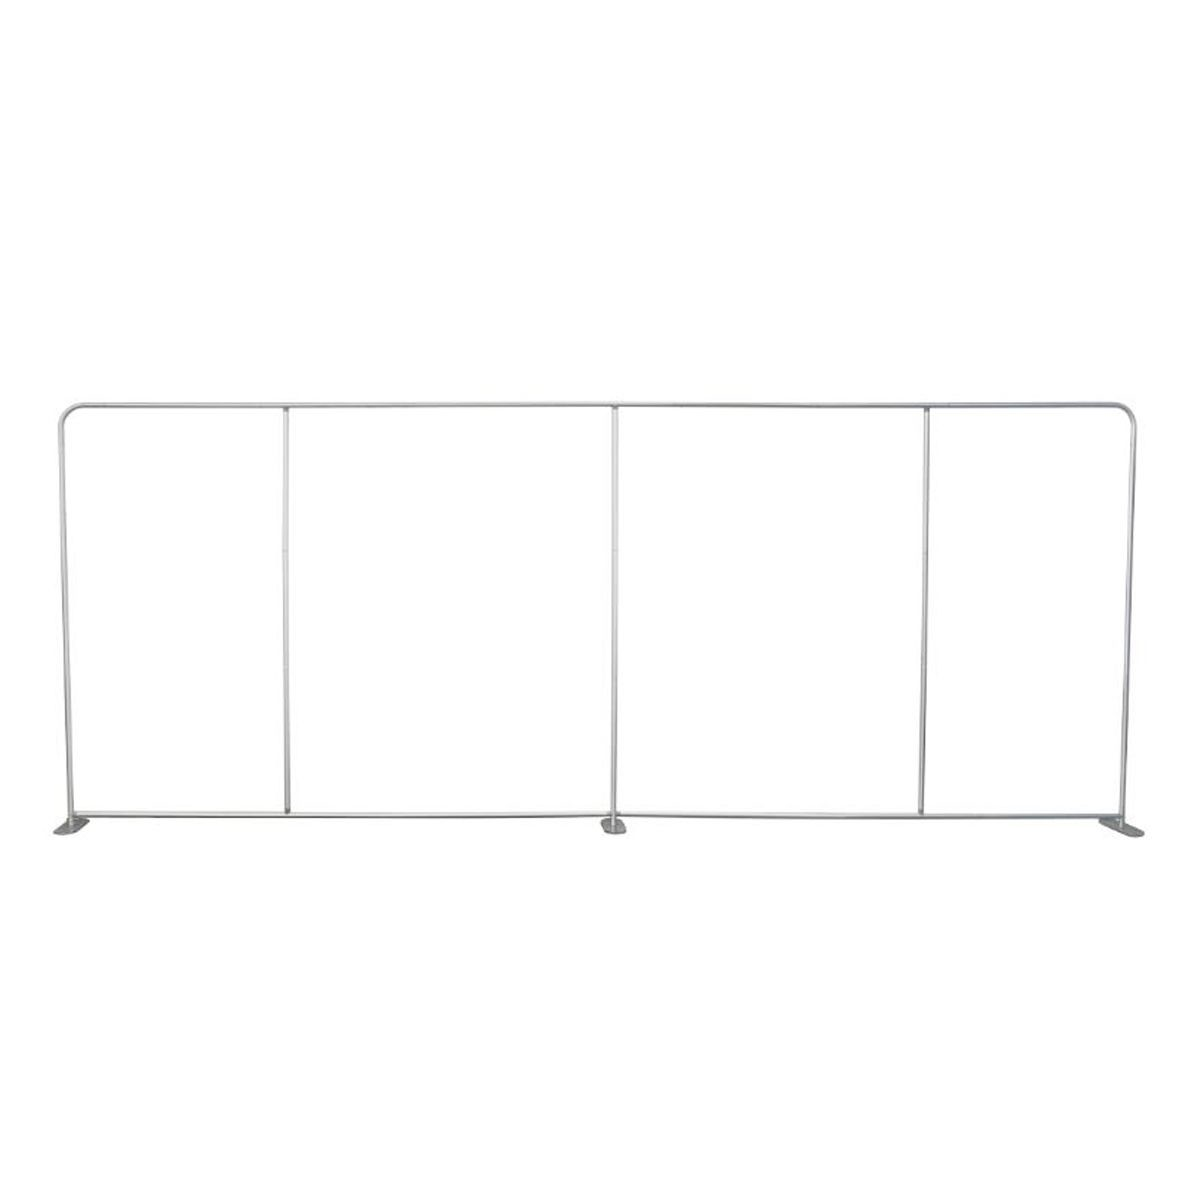 20 Foot Premium Tension Fabric Display (Straight) - Frame